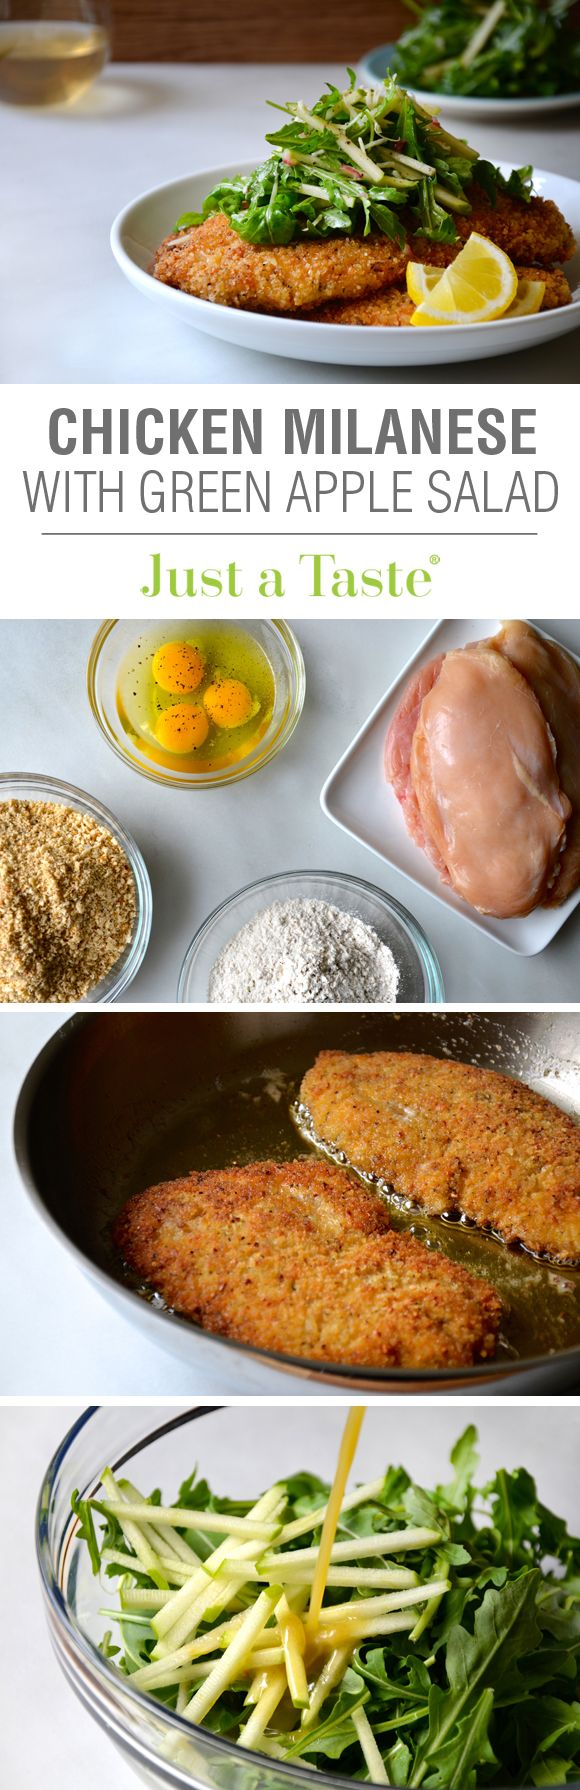 Chicken Milanese with Green Apple Salad #recipe from @justataste